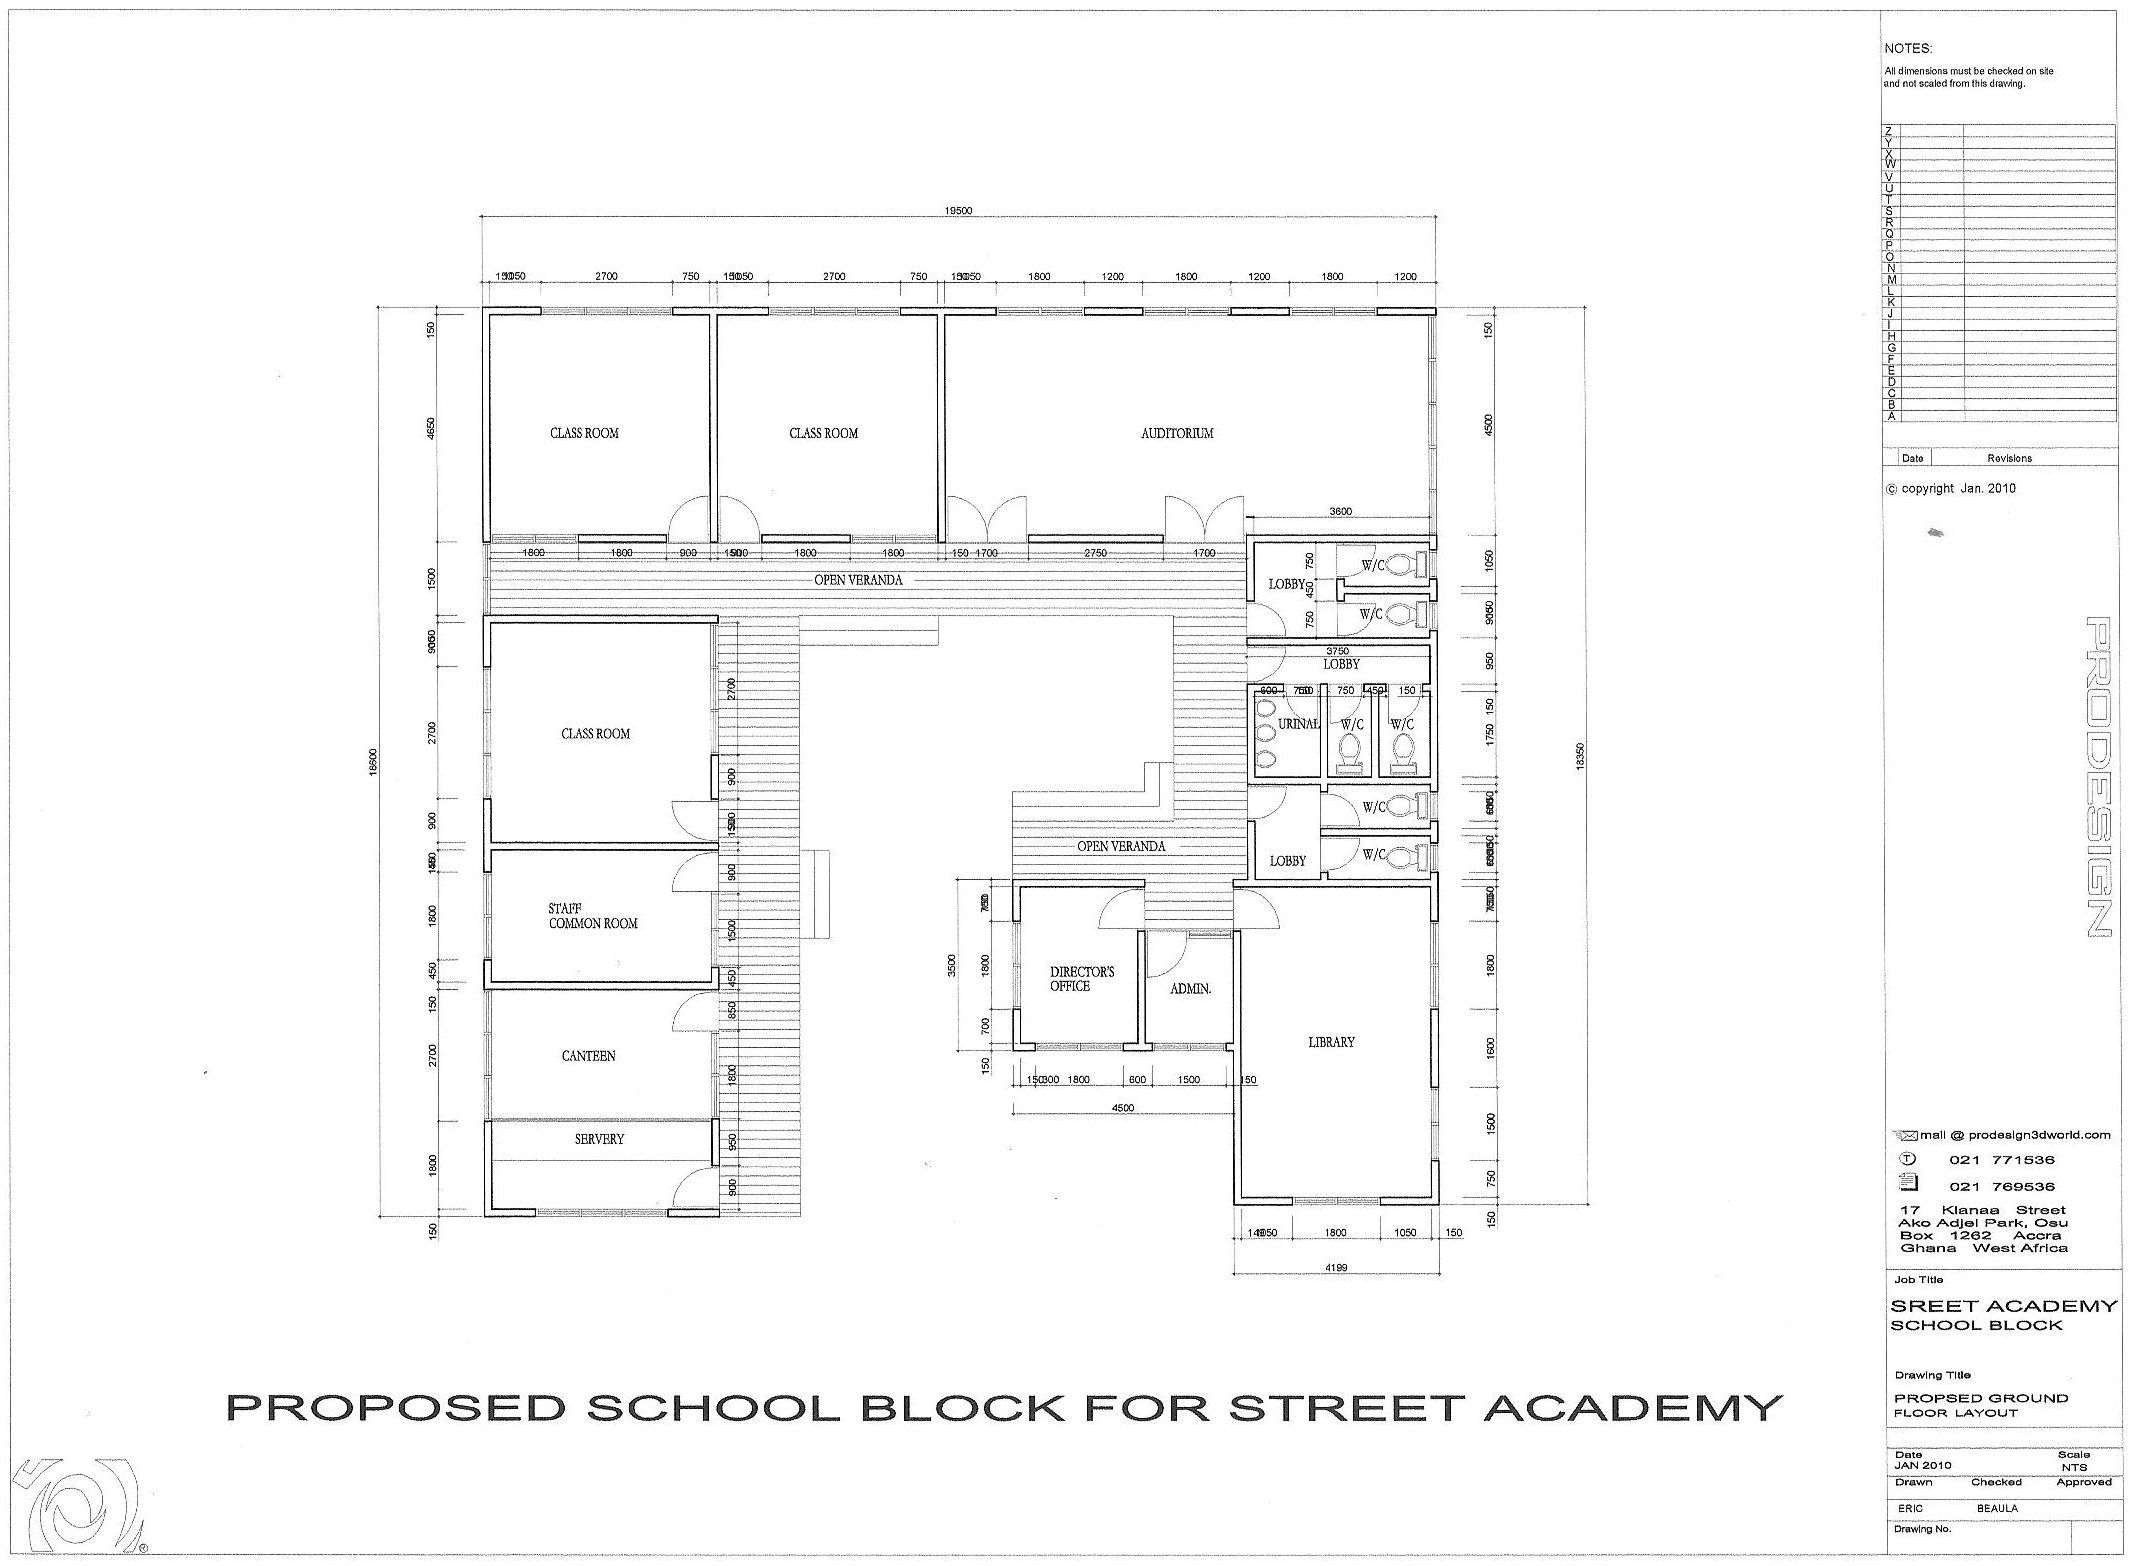 Top Photo Of Periaktoi Simple Building Plans School Plan Drawing Apkza 5 Images School Floor Plan School Building Design School Building Plans